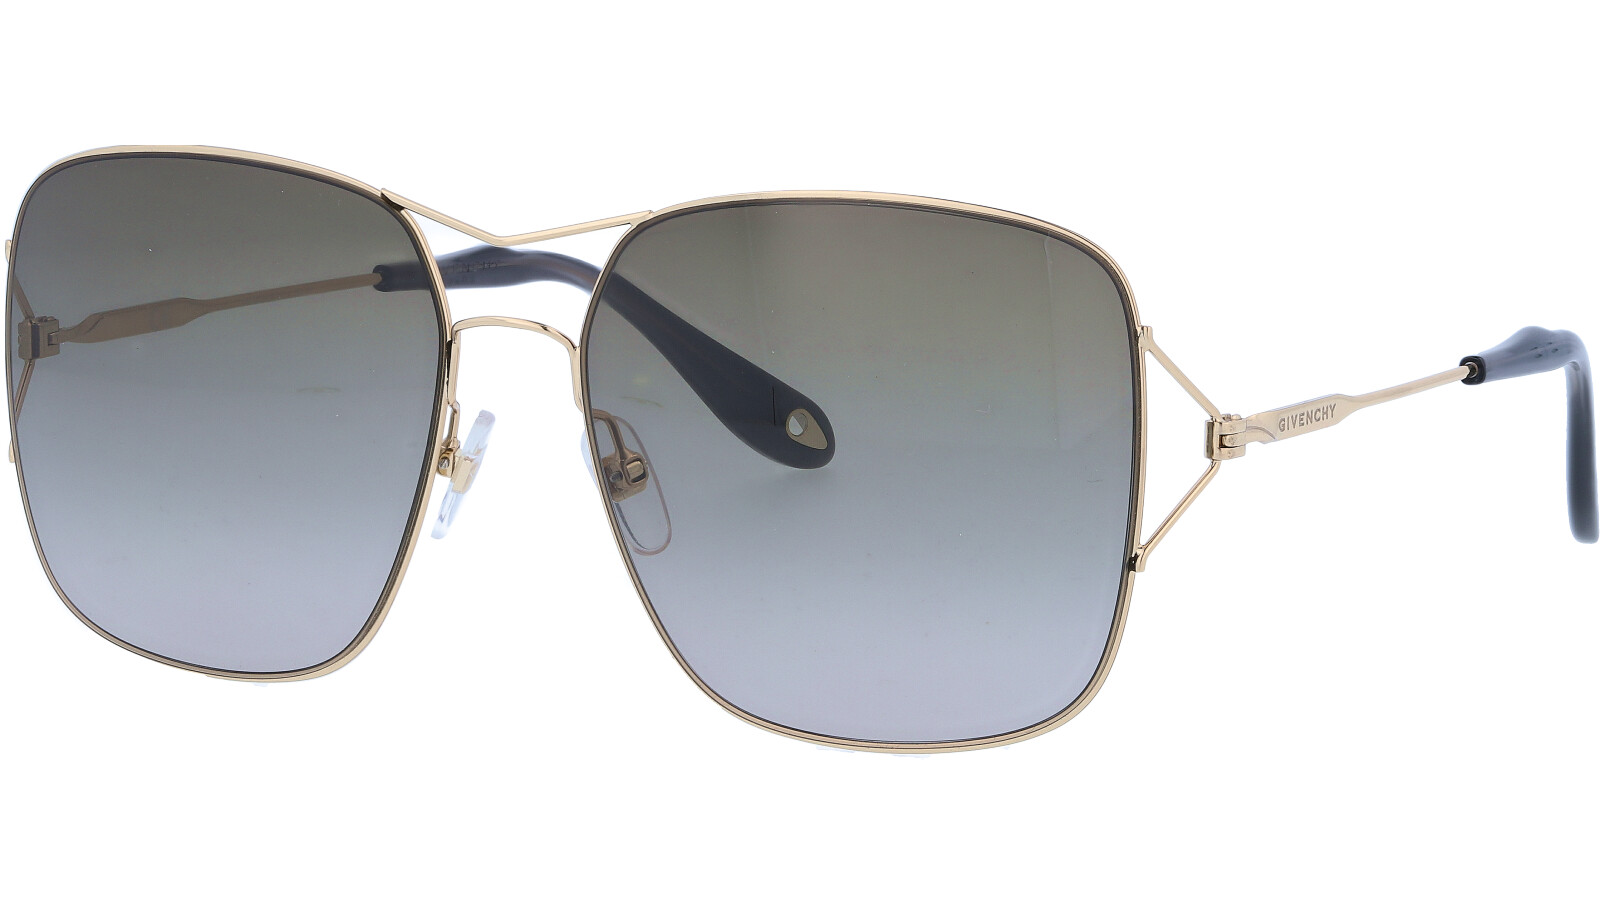 GIVENCHY GV7004S J5GHA 58 GOLD Sunglasses